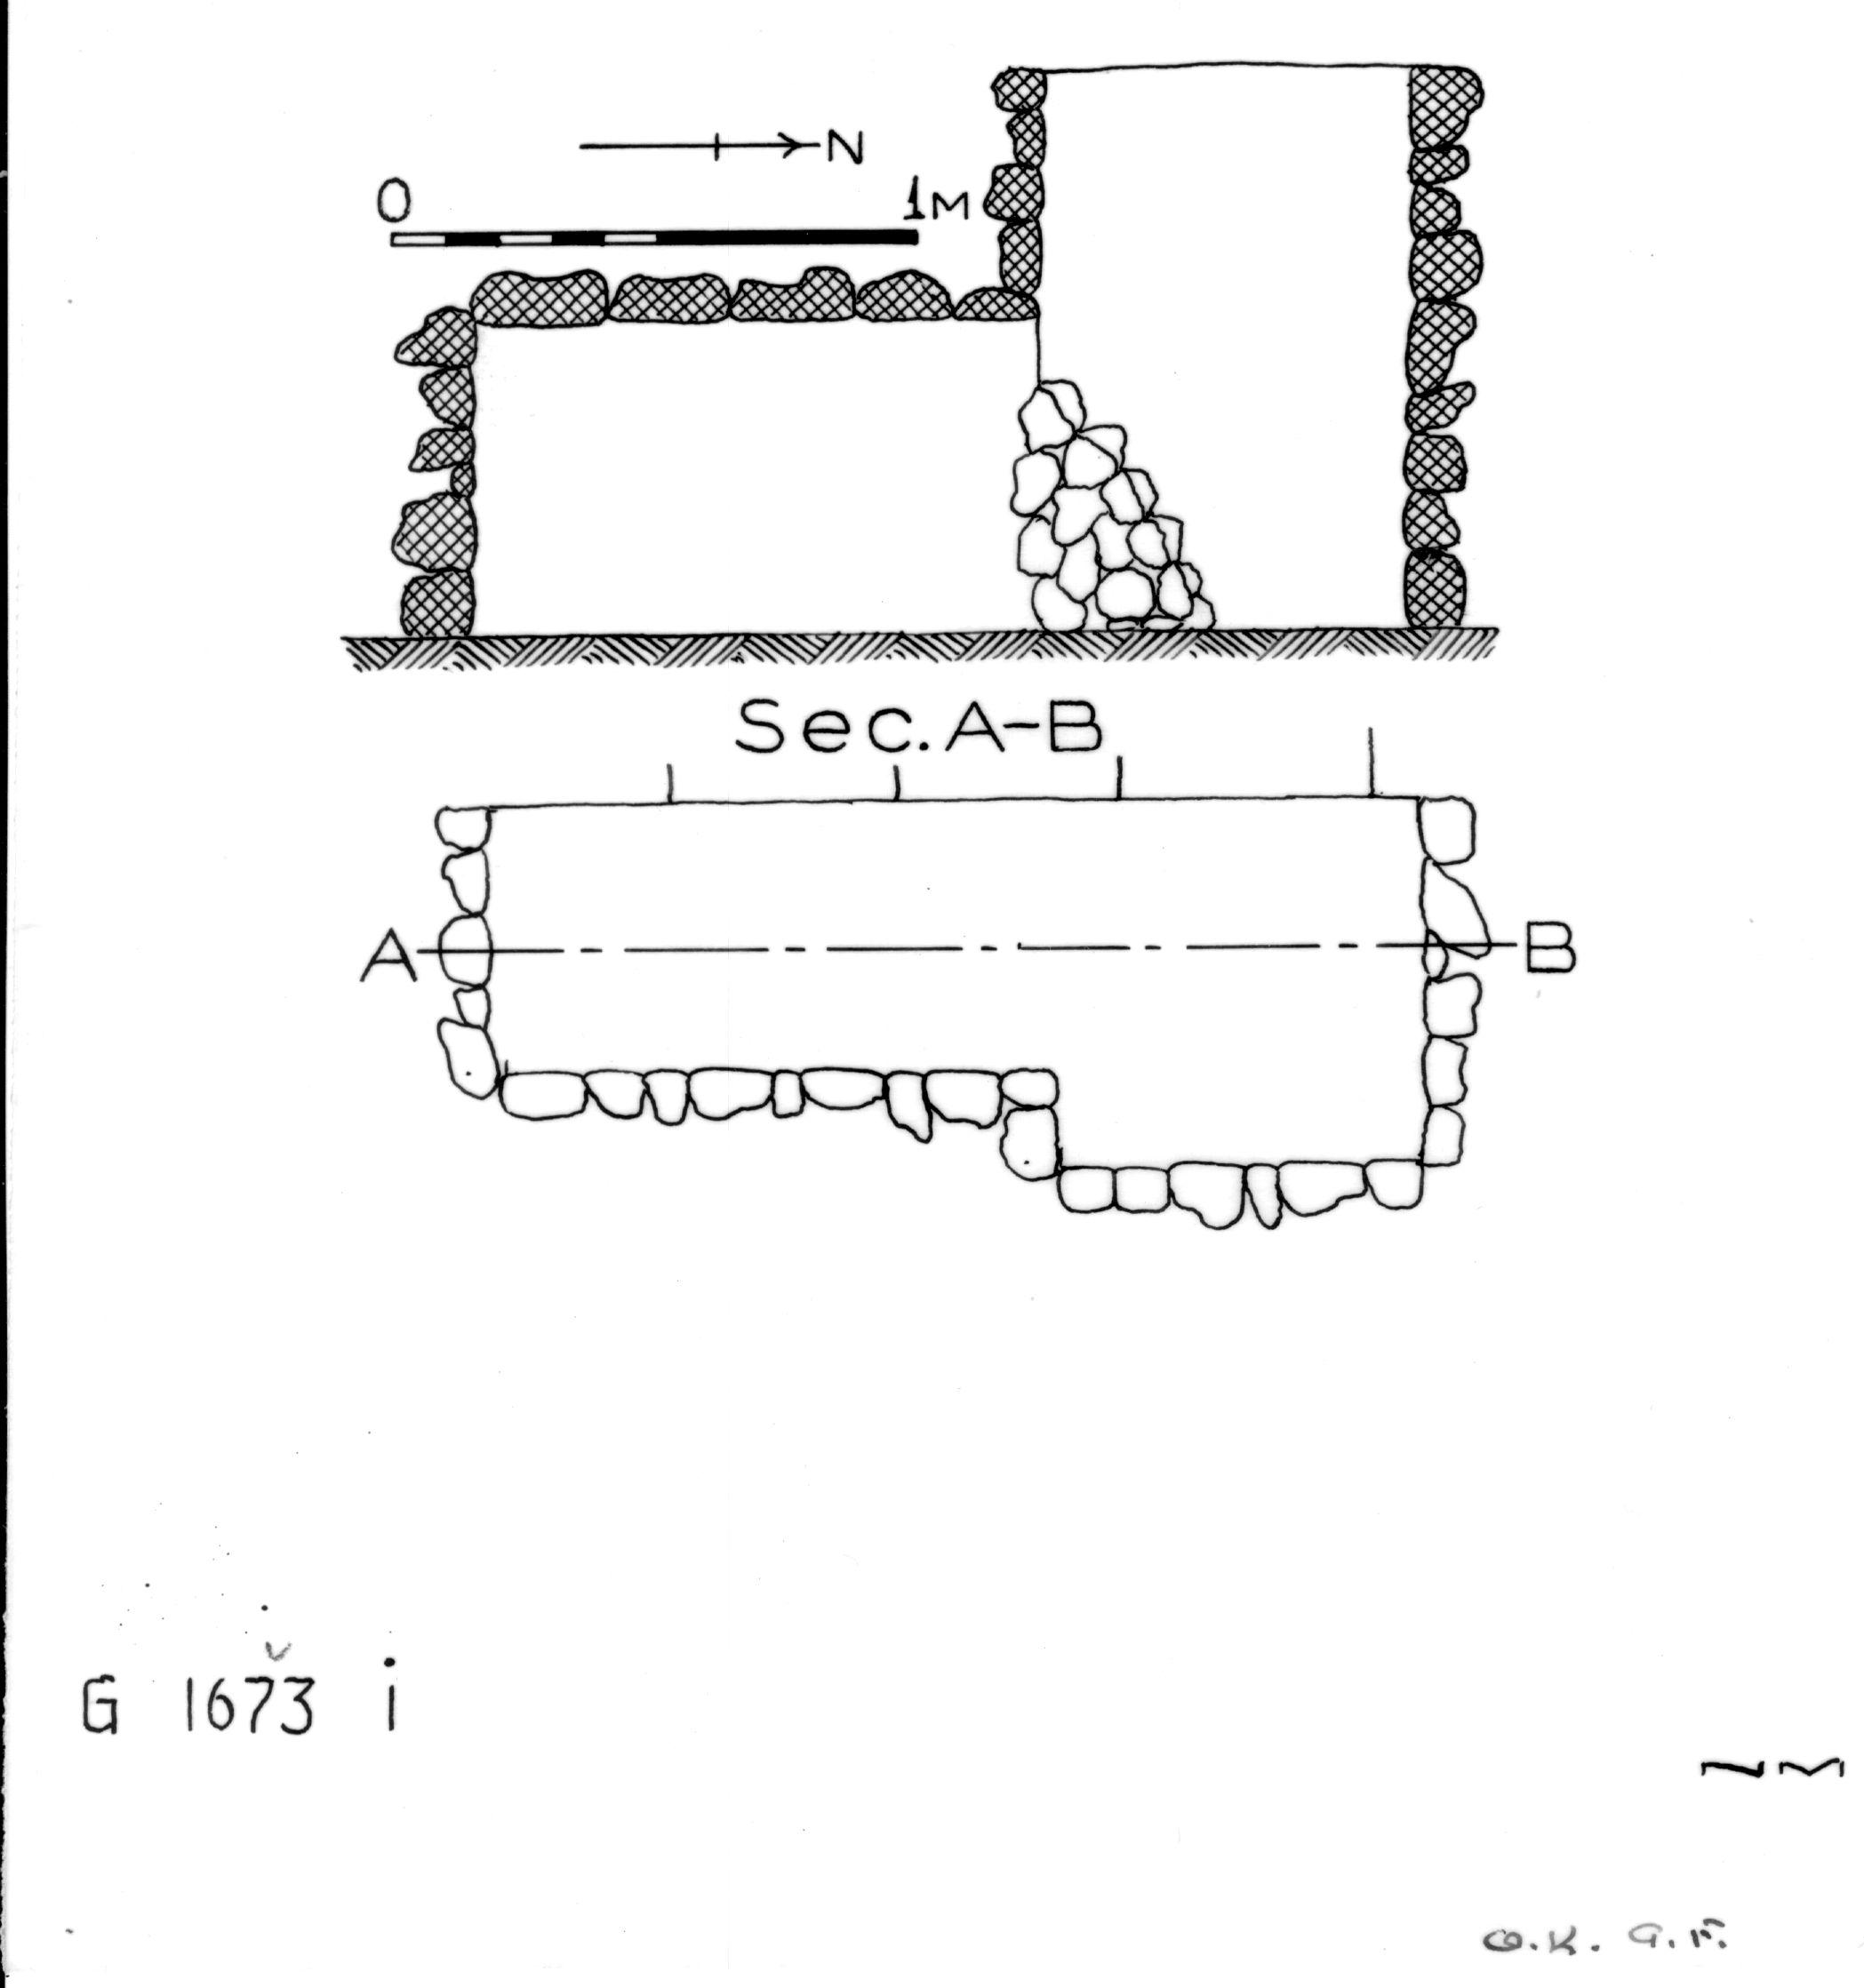 Maps and plans: G 1673, Shaft I